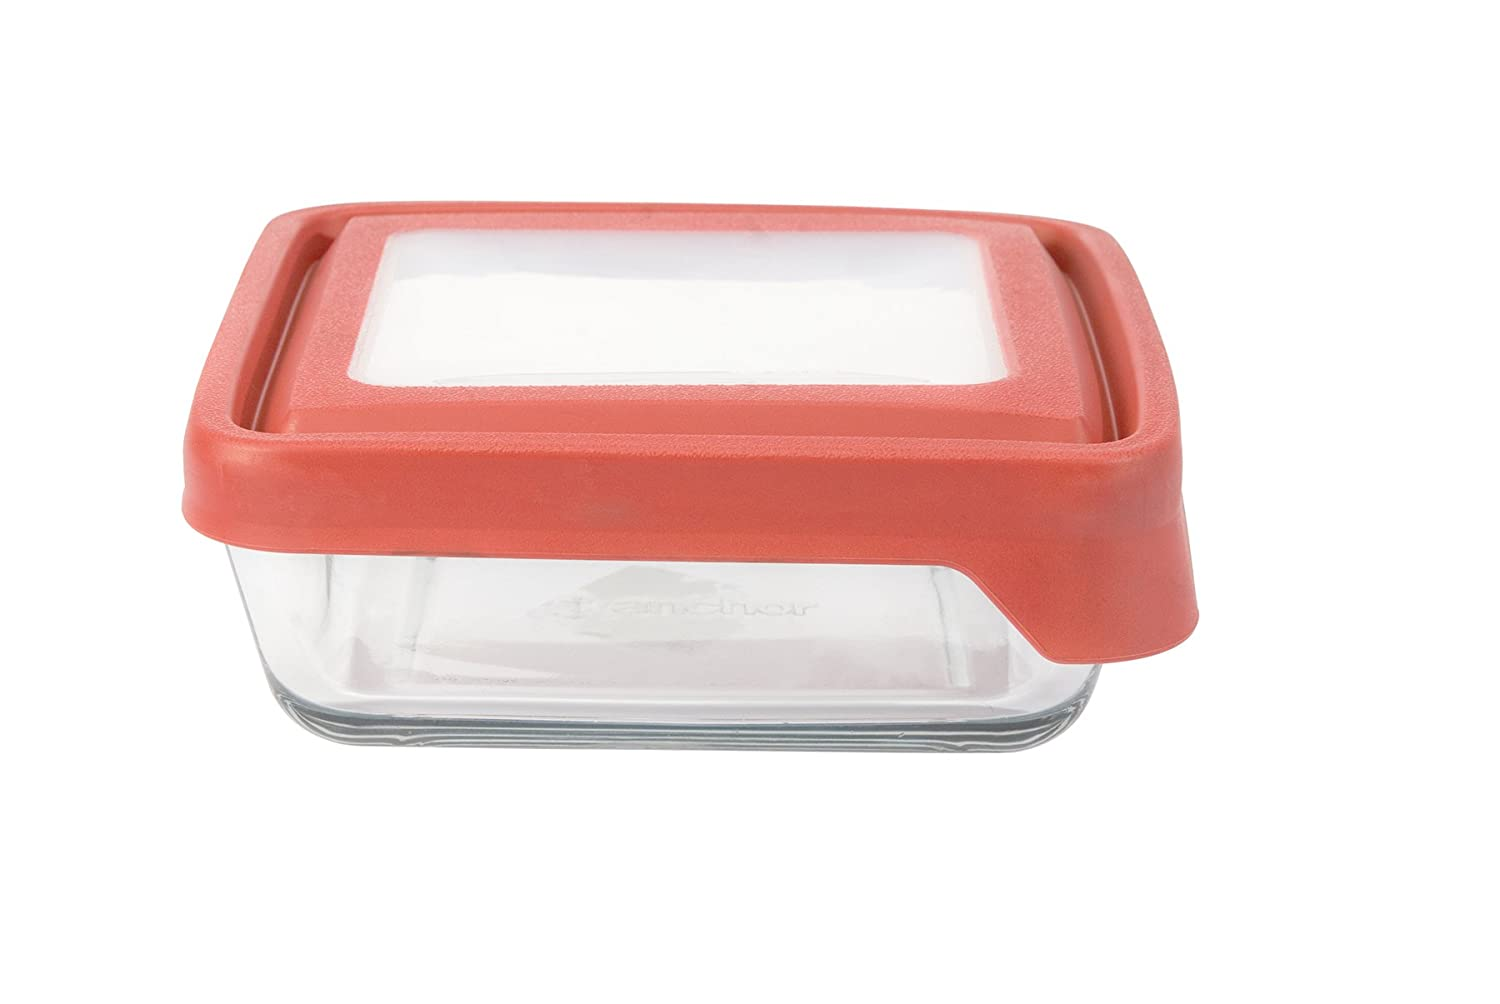 Anchor Hocking TrueSeal Glass Food Storage Container with Lid, Cherry, 4 3/4 Cup